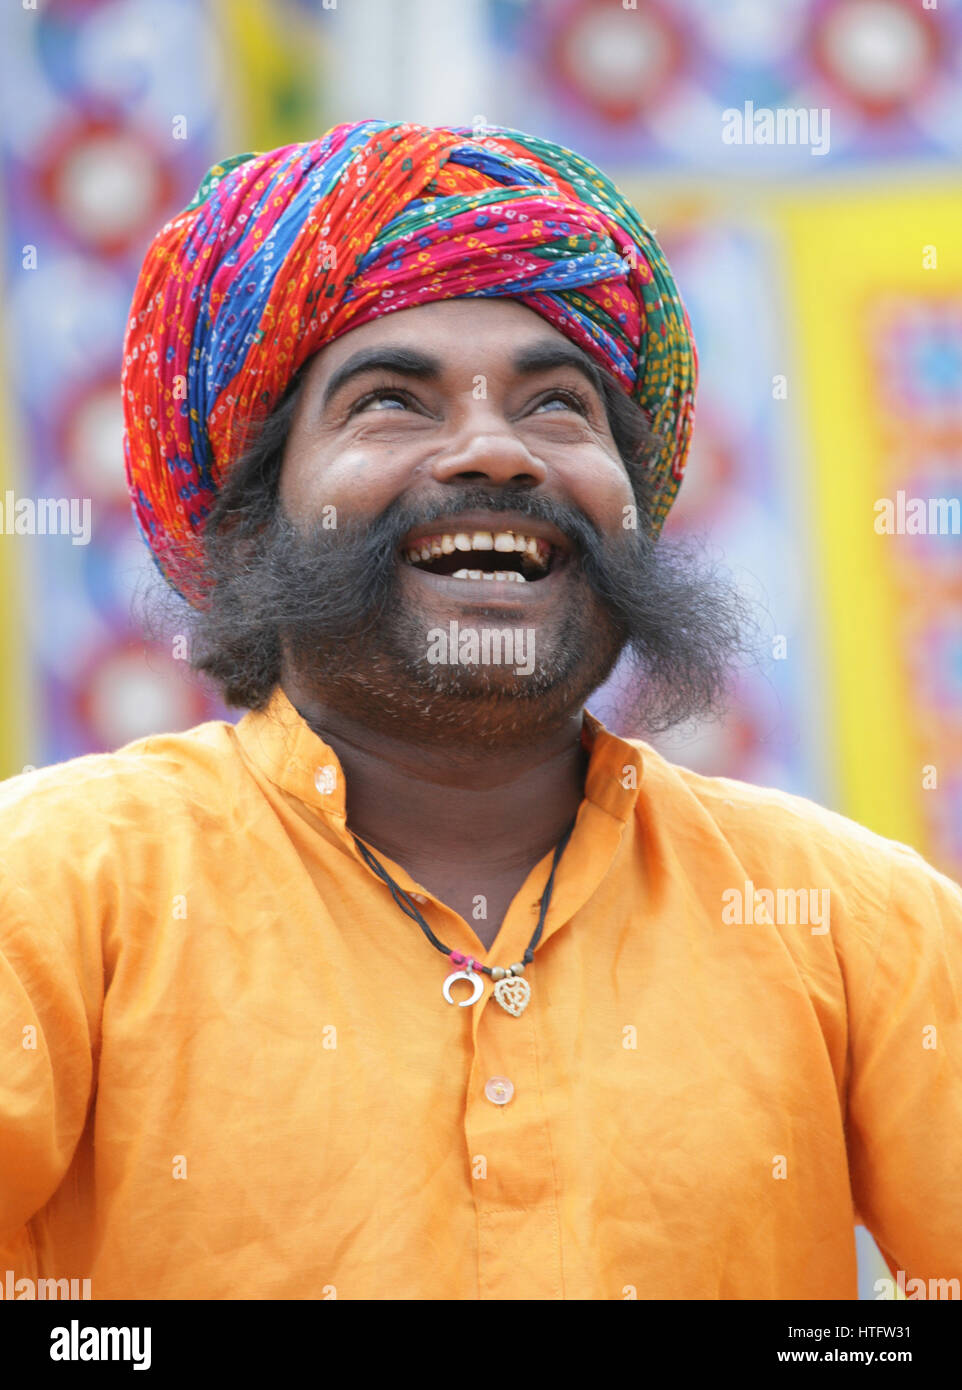 Indian man laughing. Colourful portrait, full frame photograph full of infectious joy and  happiness.  Happiness - Stock Image